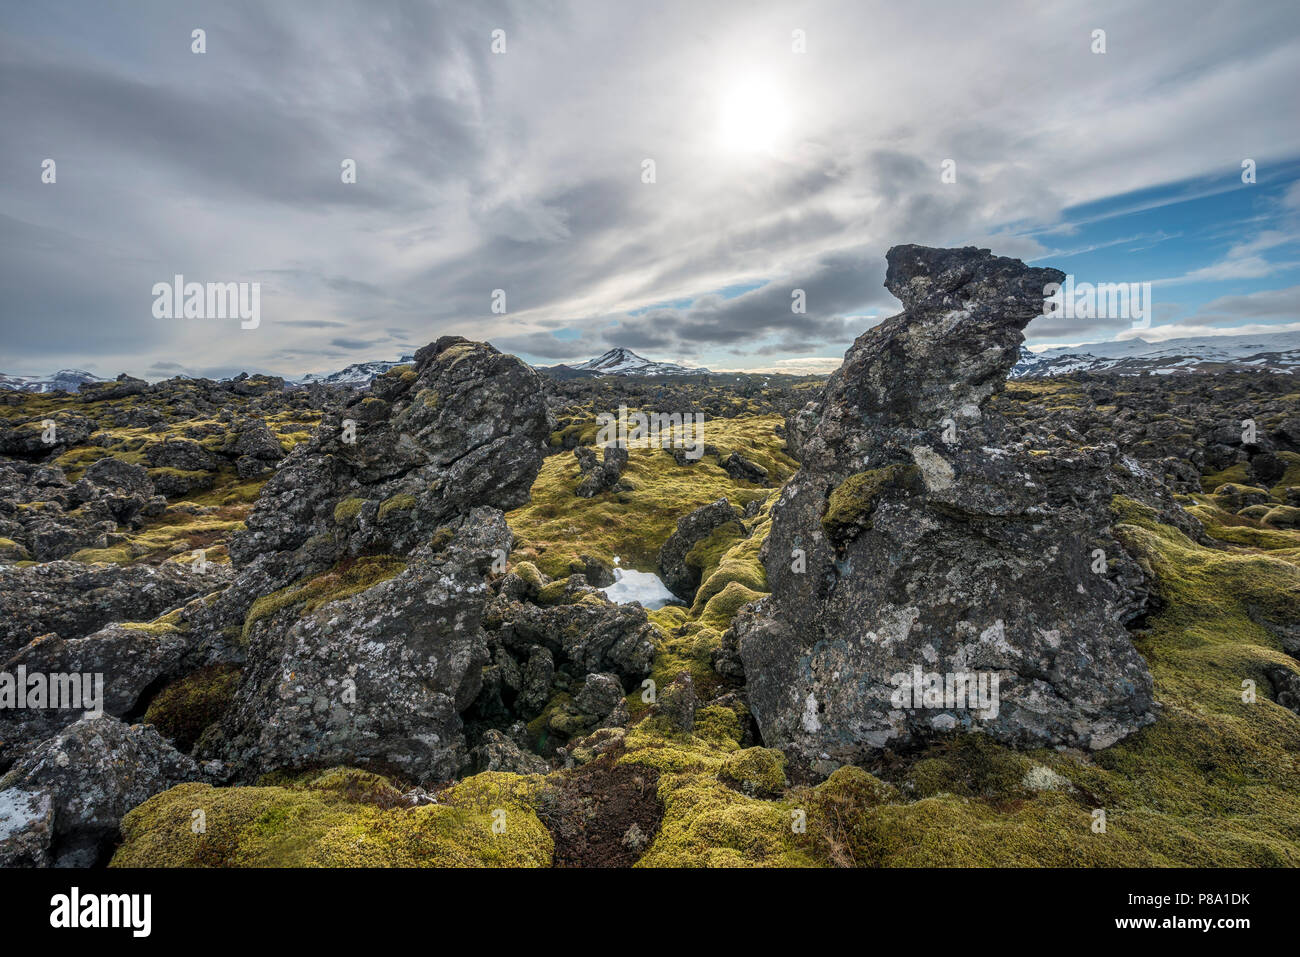 Moss-covered lava field, lava rock, lava field of the volcano Kothraunskula, Snaefellsnes Peninsula, West Iceland, Iceland - Stock Image